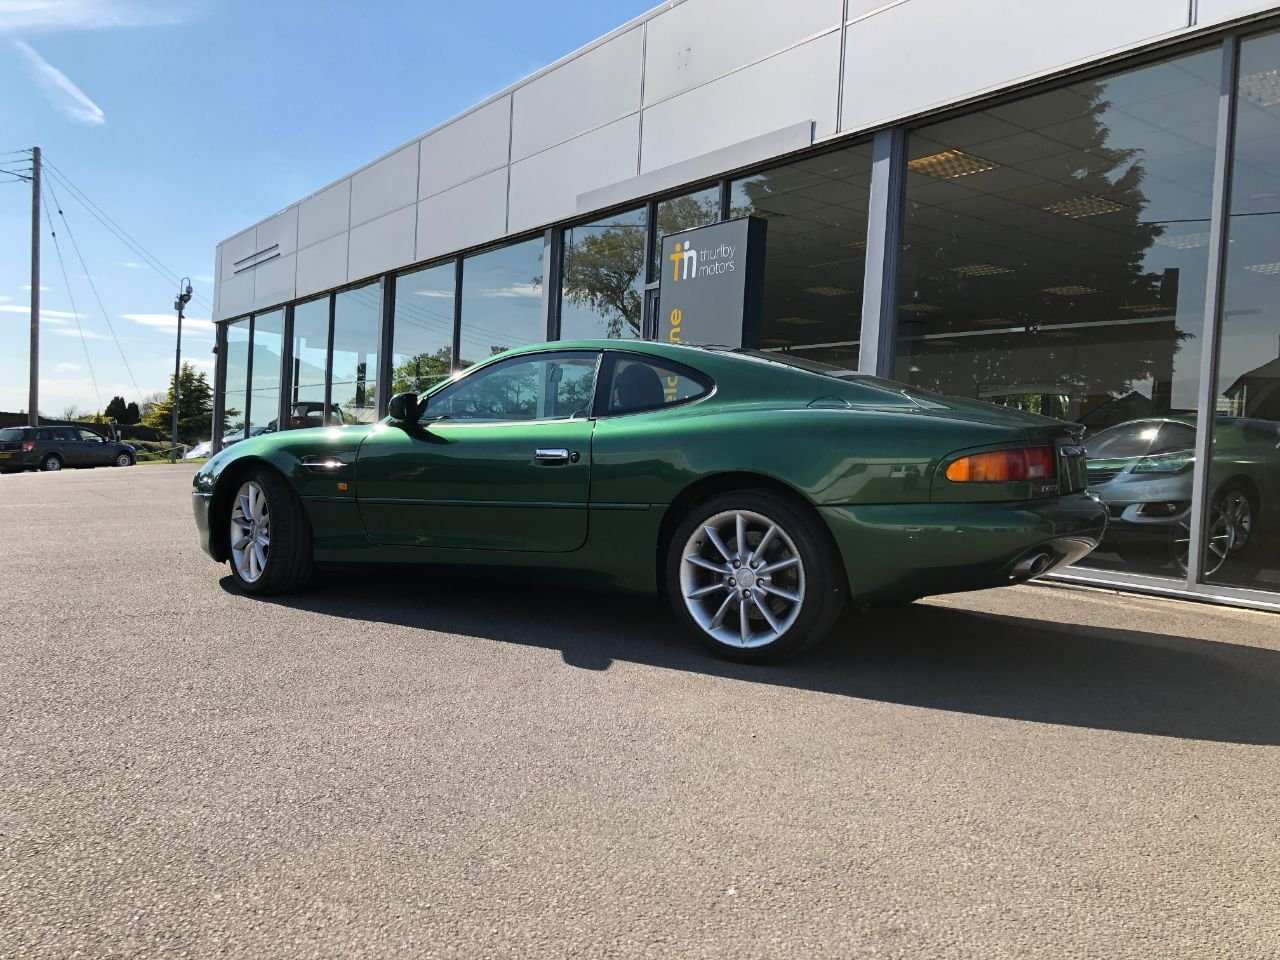 2000 Aston Martin DB7 Vantage For Sale (picture 2 of 6)